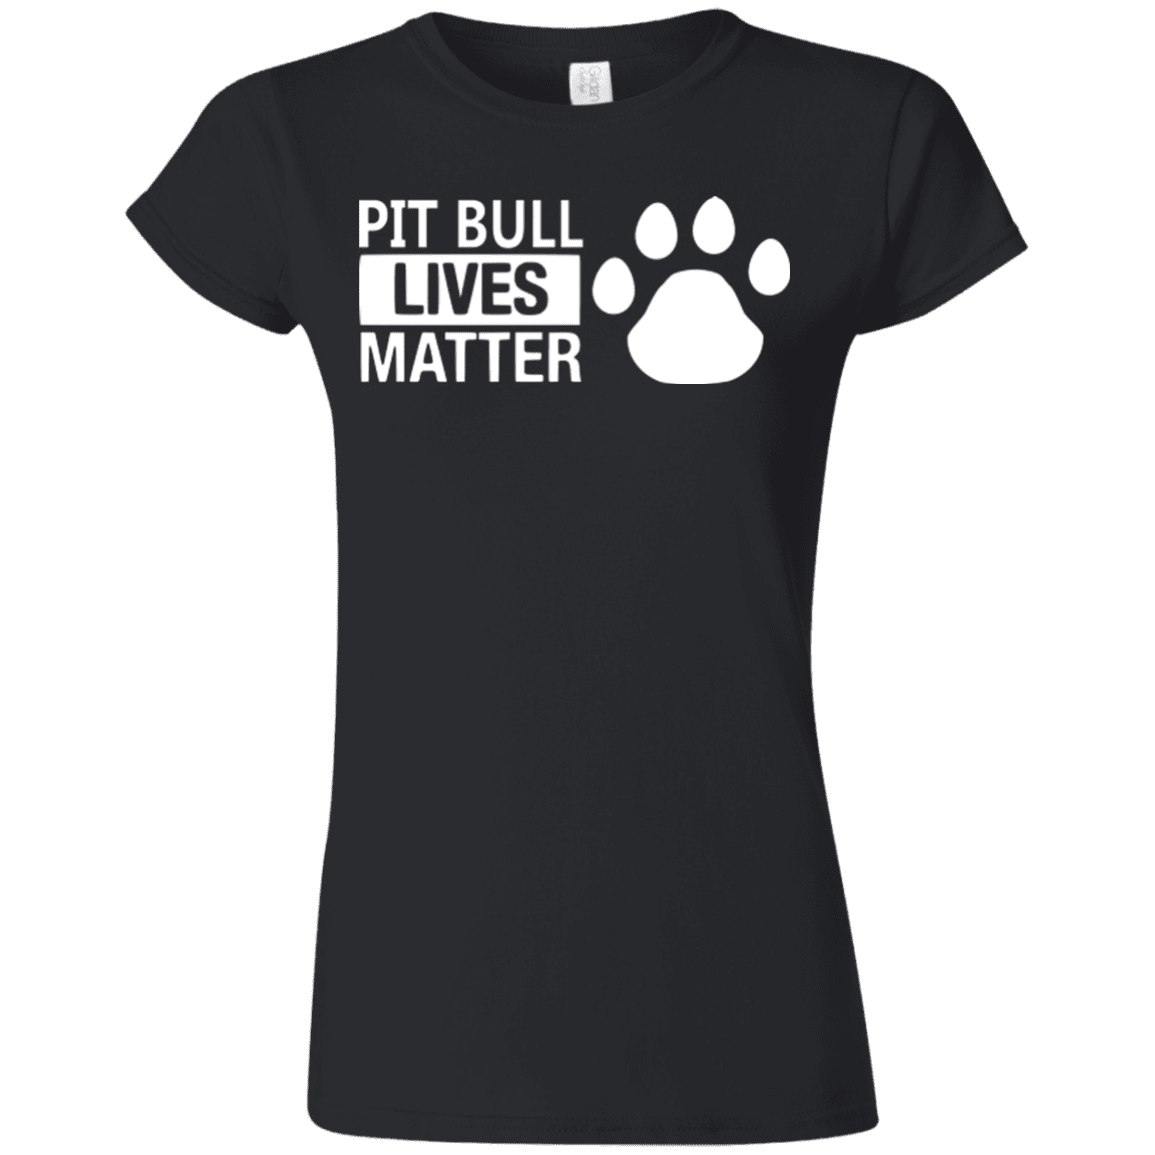 Pit Bull Lives Matter - G640L Gildan Softstyle Ladies' T-Shirt Dark Black Small - Little Pit Shop